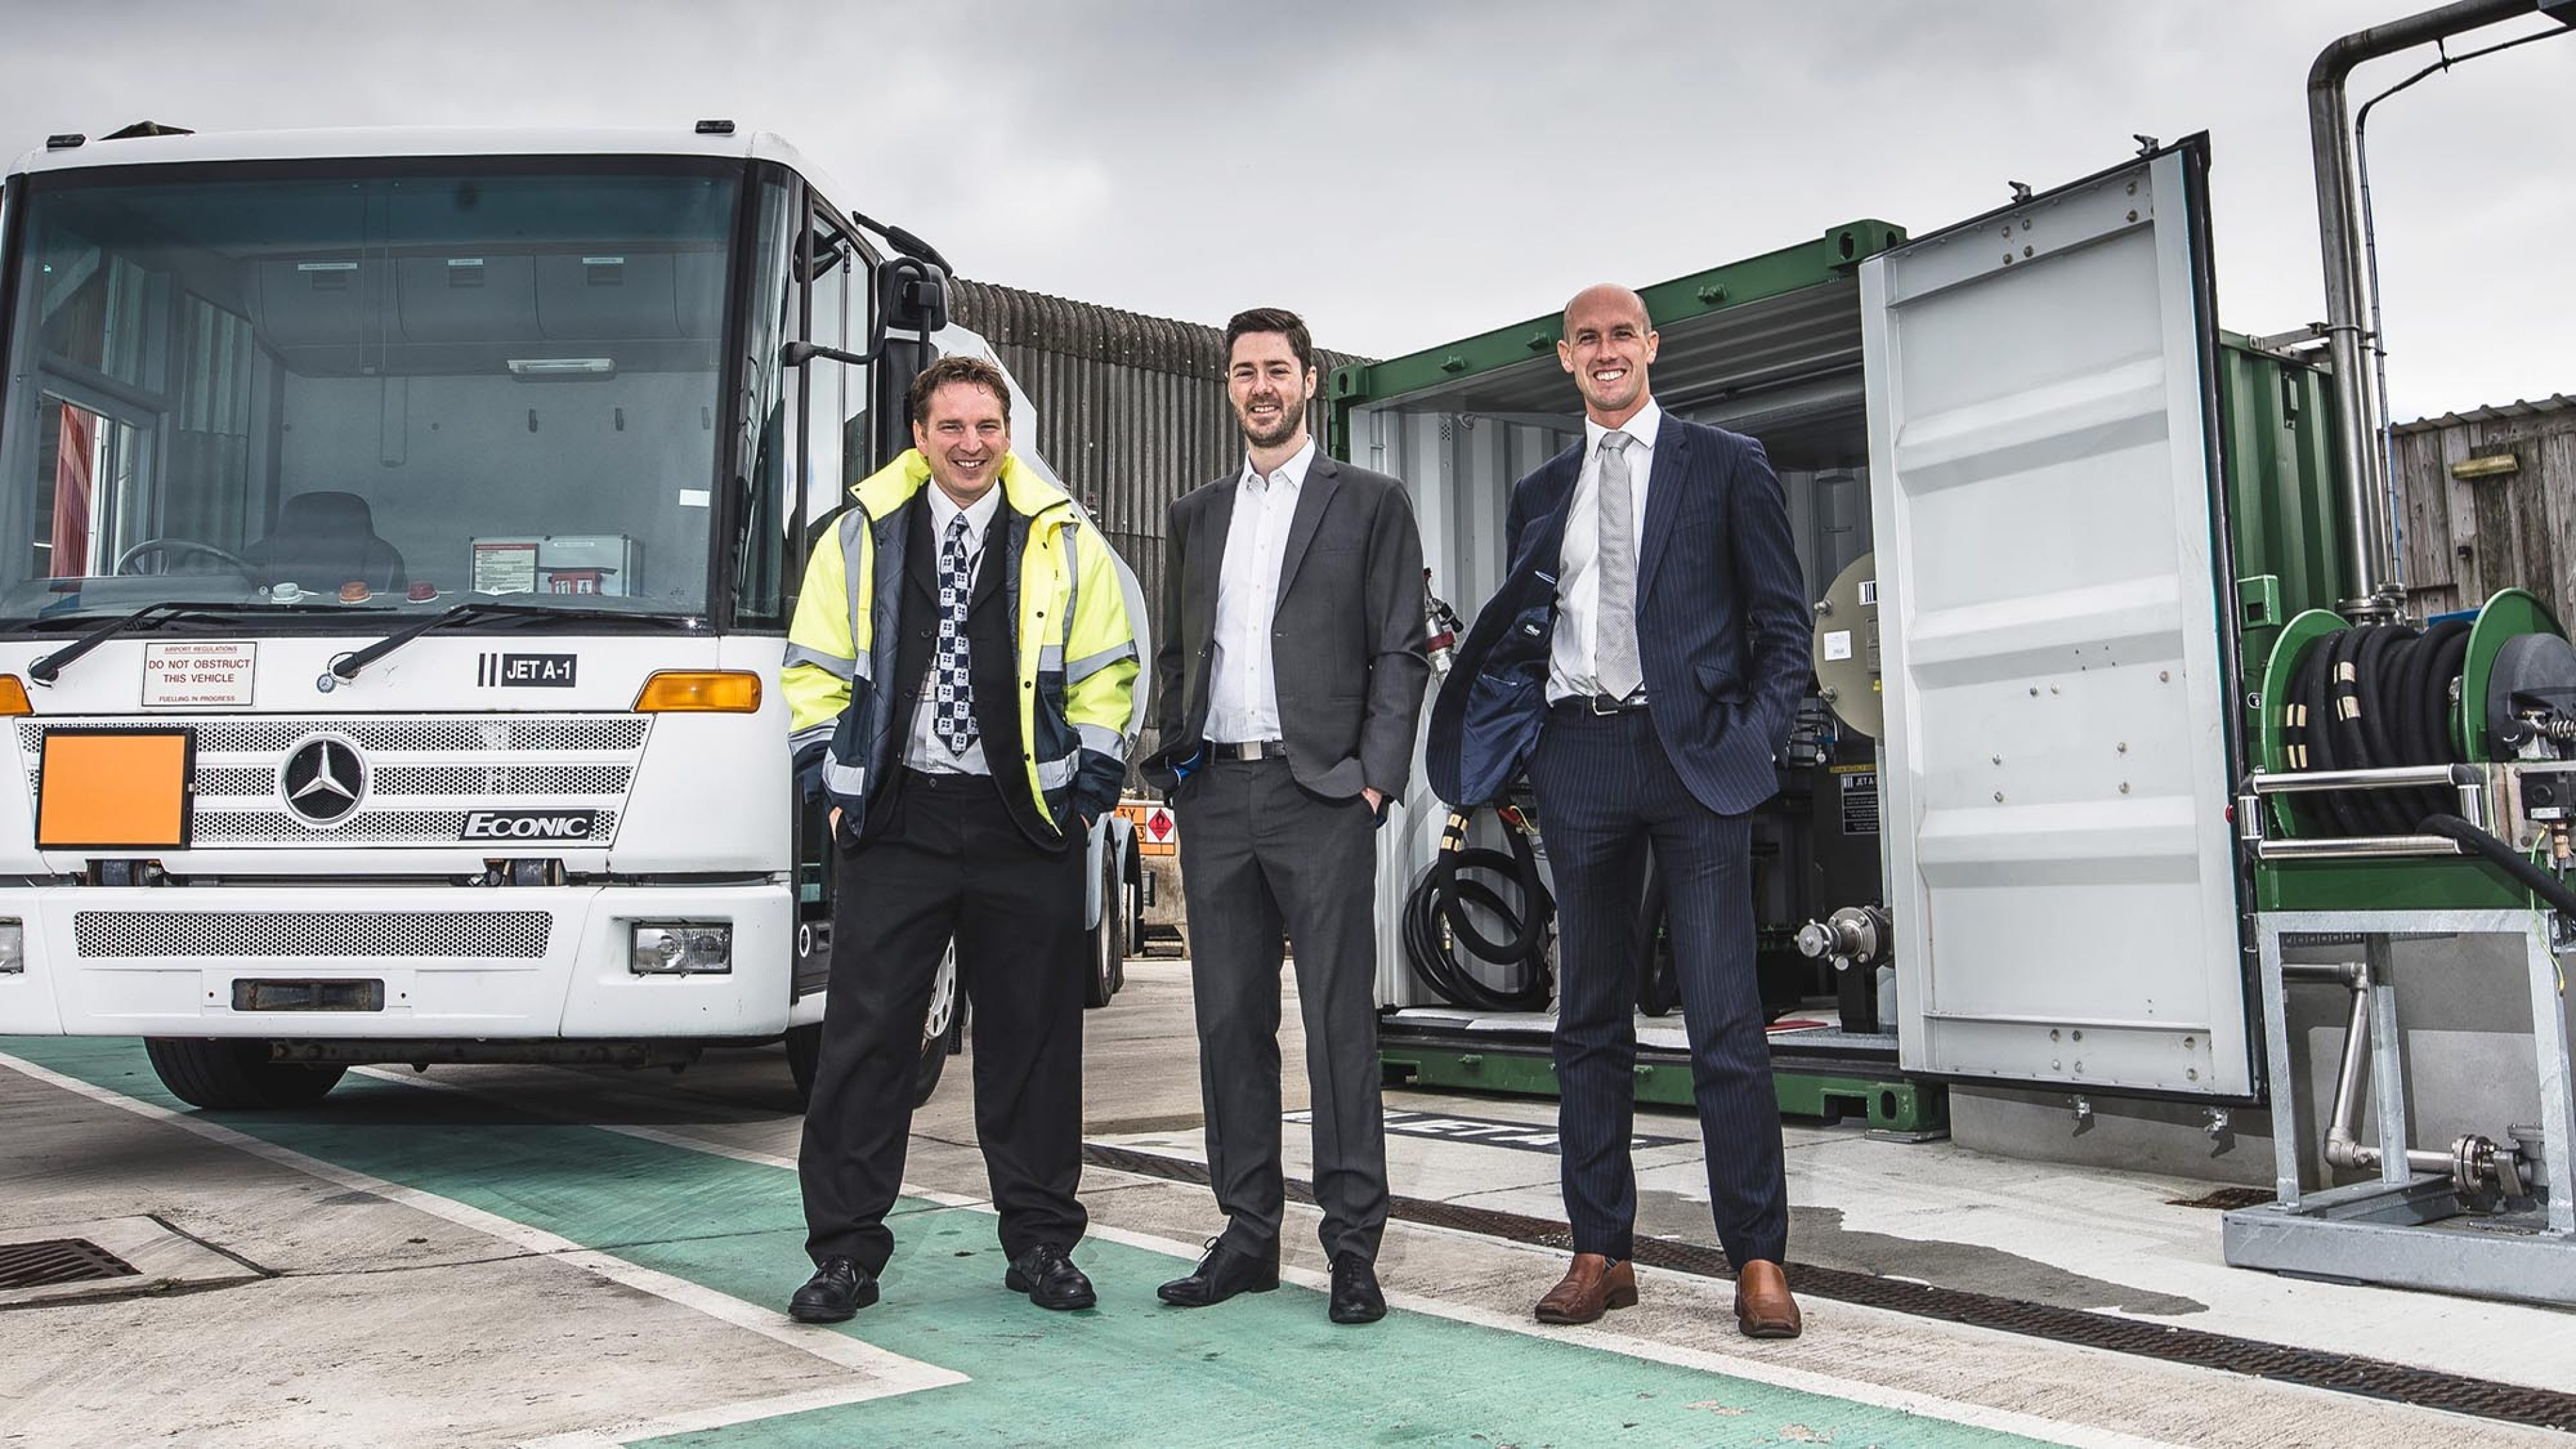 (L-R) Chris Pearson, airport manager and senior air traffic controller; Russell Halley general aviation account manager, Air BP and Stuart Reid chief financial officer, Isles of Scilly Steamship Group